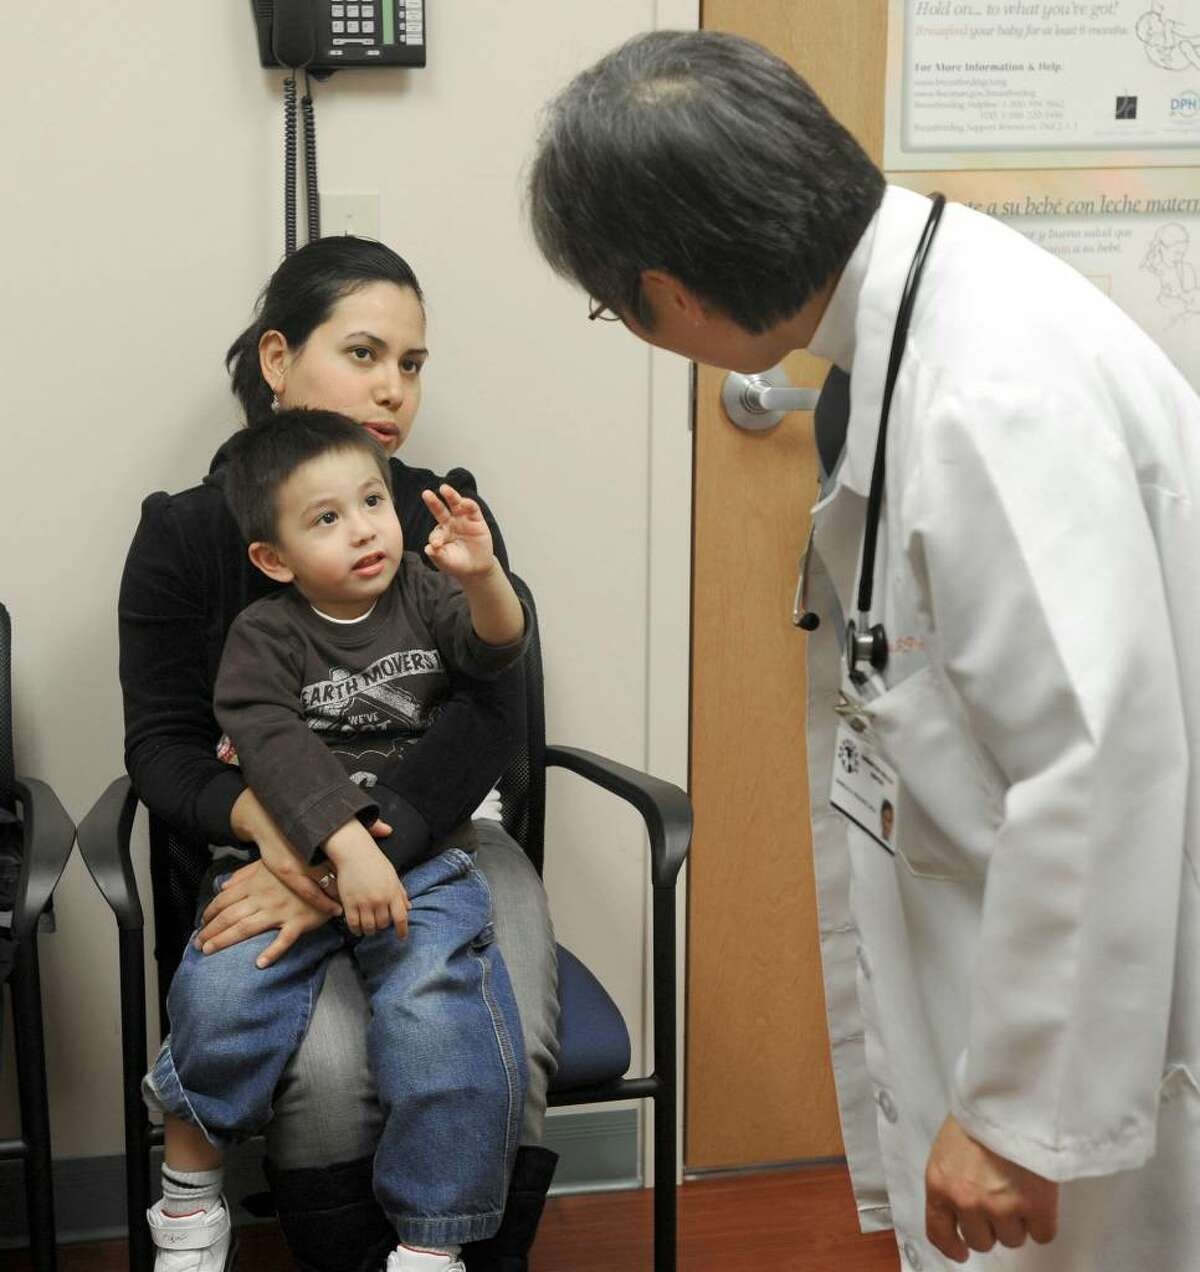 Dr. Pamela Paulhus takes a minute to chat with Danny Ortiz, 3, and his mother Nayeli. They are visiting the Samaritan Health Center in Danbury to get treatment for Danny's brother Axel's asthma.